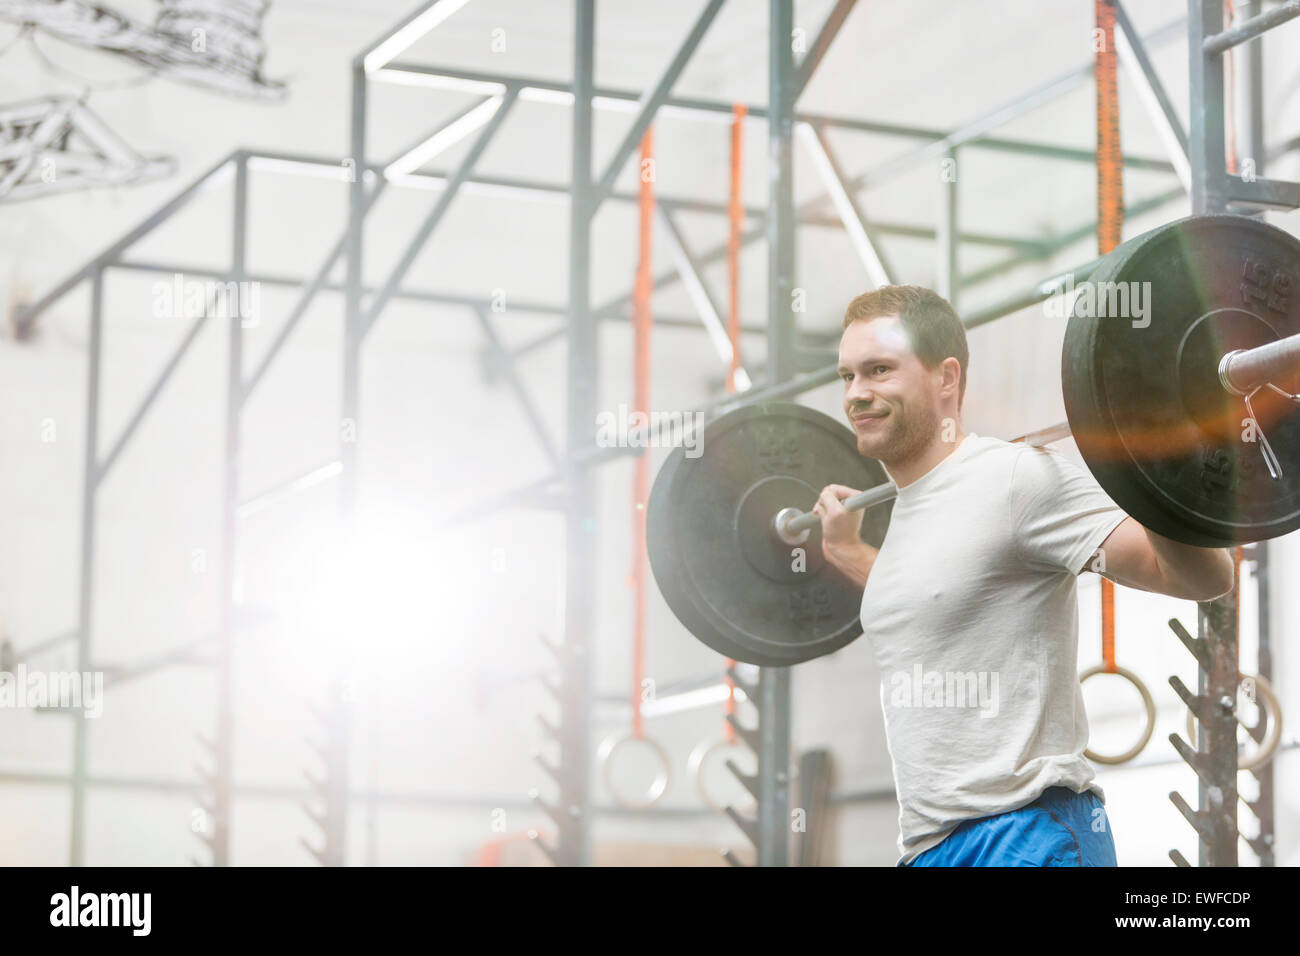 Smiling man lifting barbell gym crossfit au Photo Stock